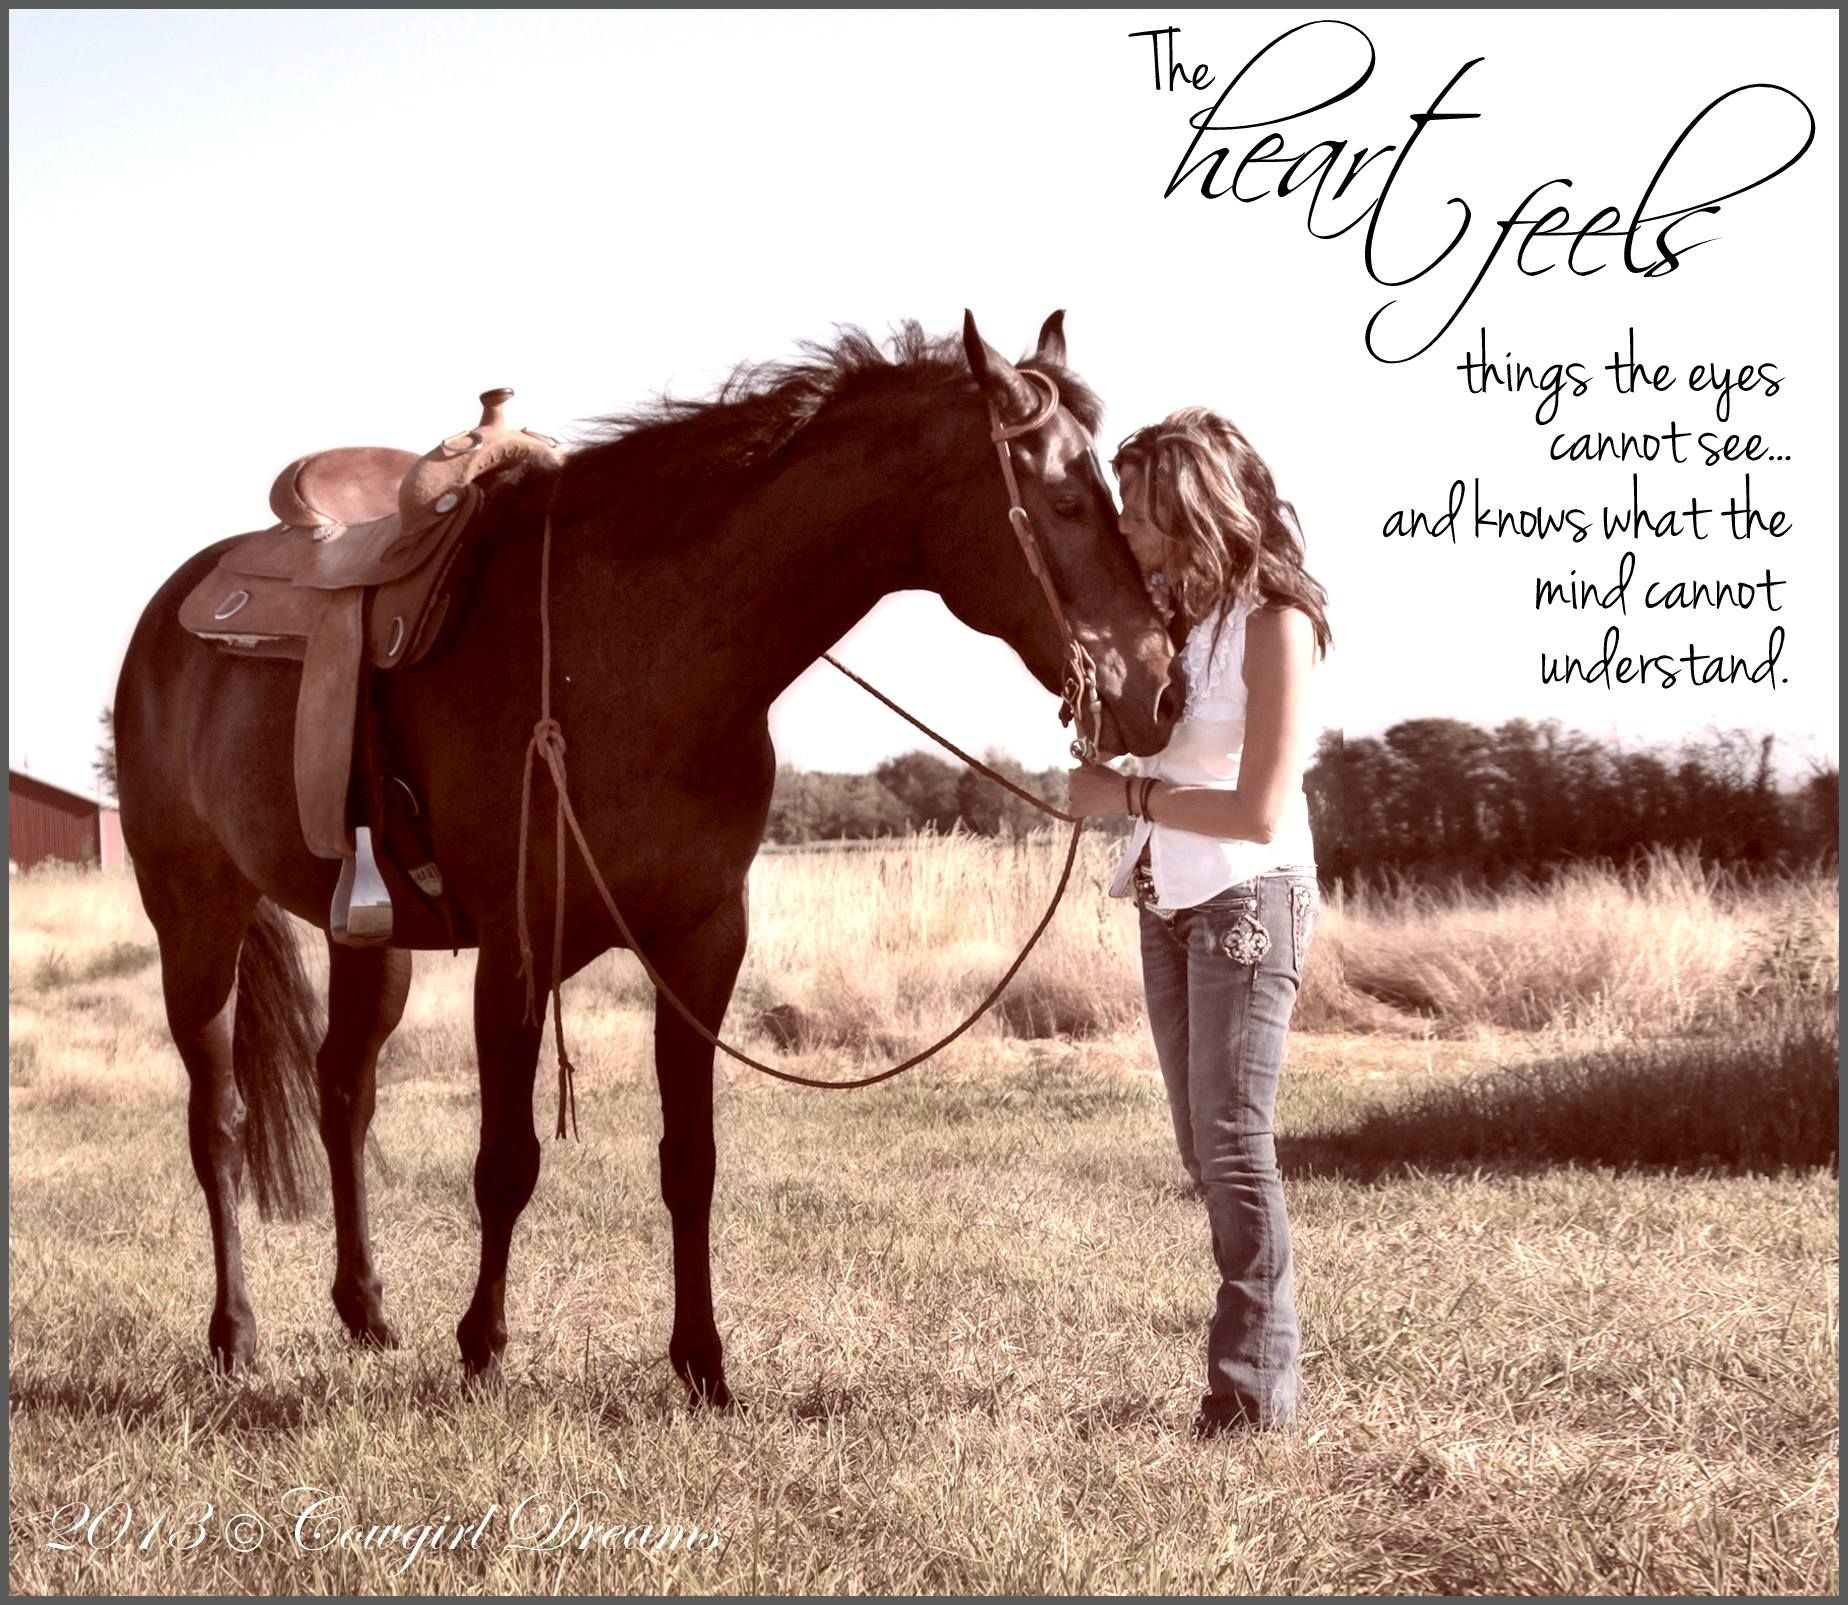 Horses have been my true love all my life...